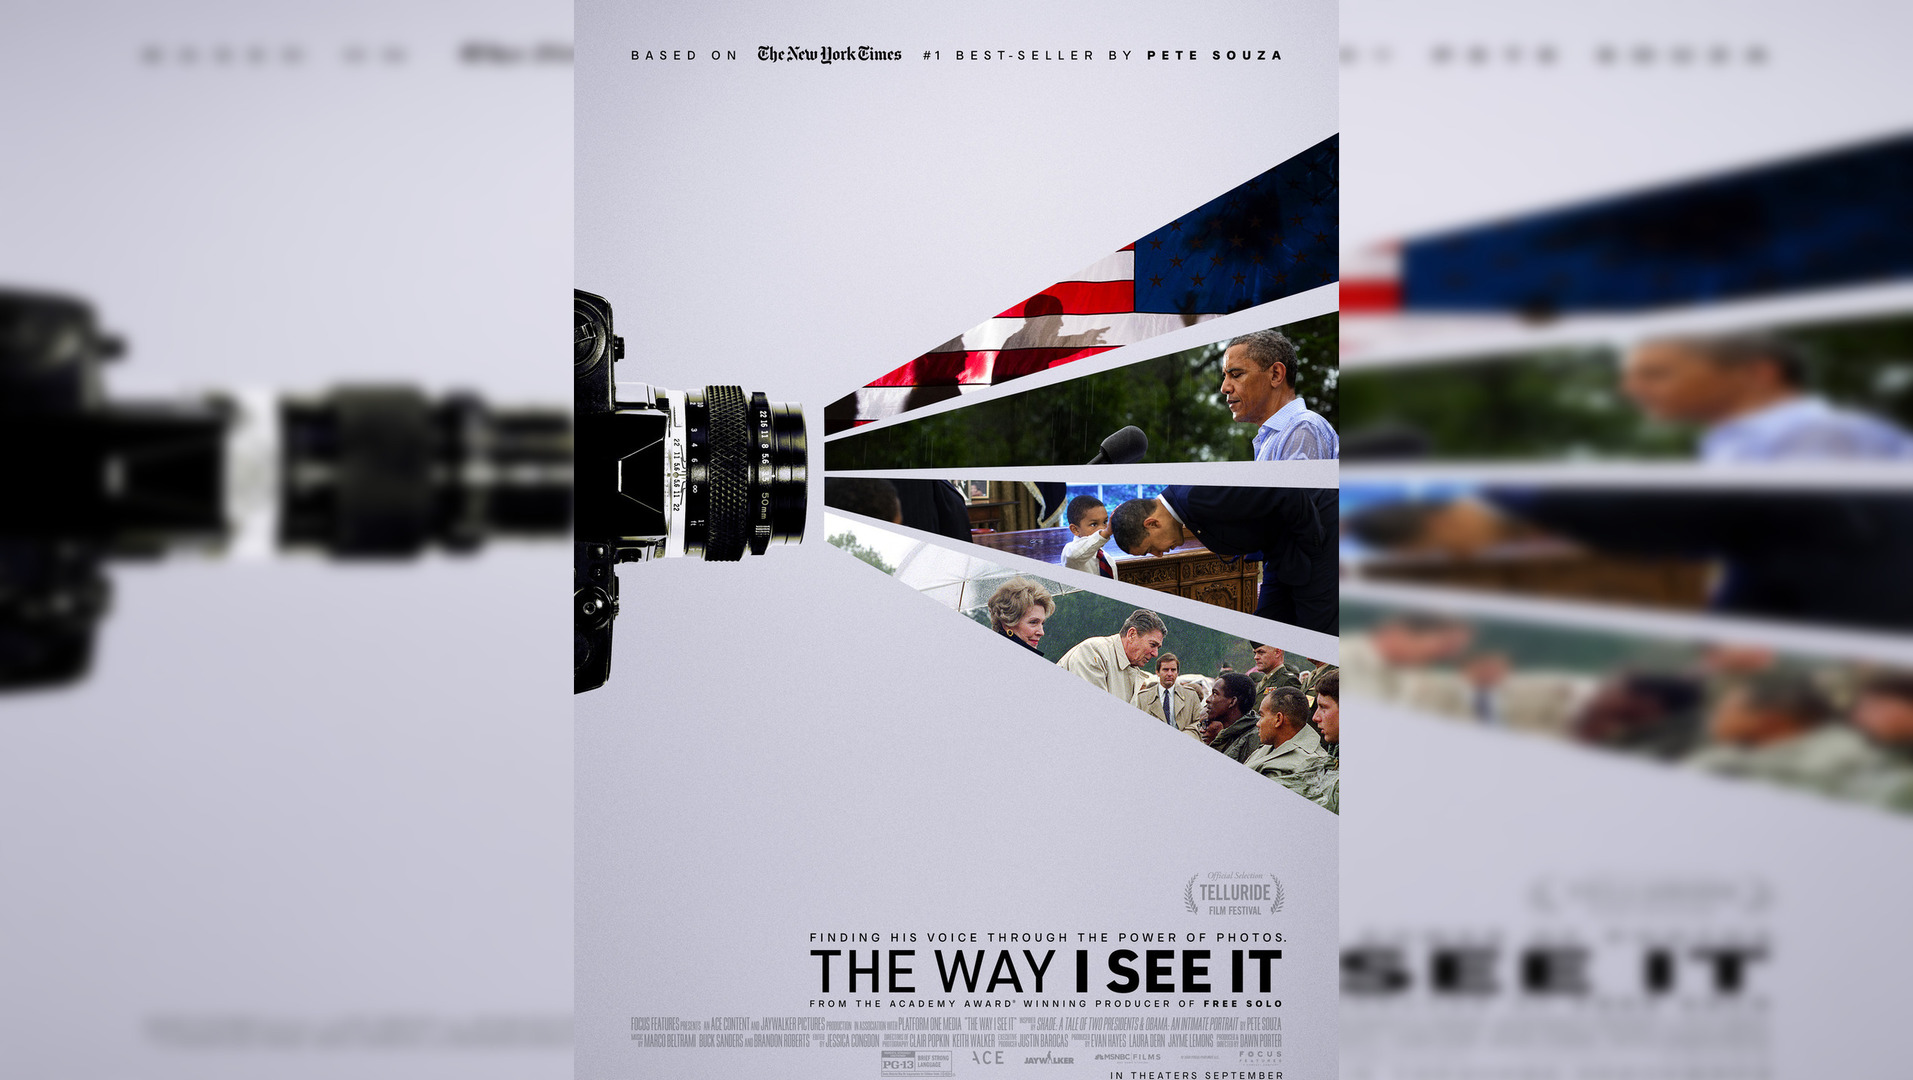 The Way I See It Review:  A Nostalgic Documentary about the Chief Photographer of the Obama Administration - Pete Souza(Rating: ***)